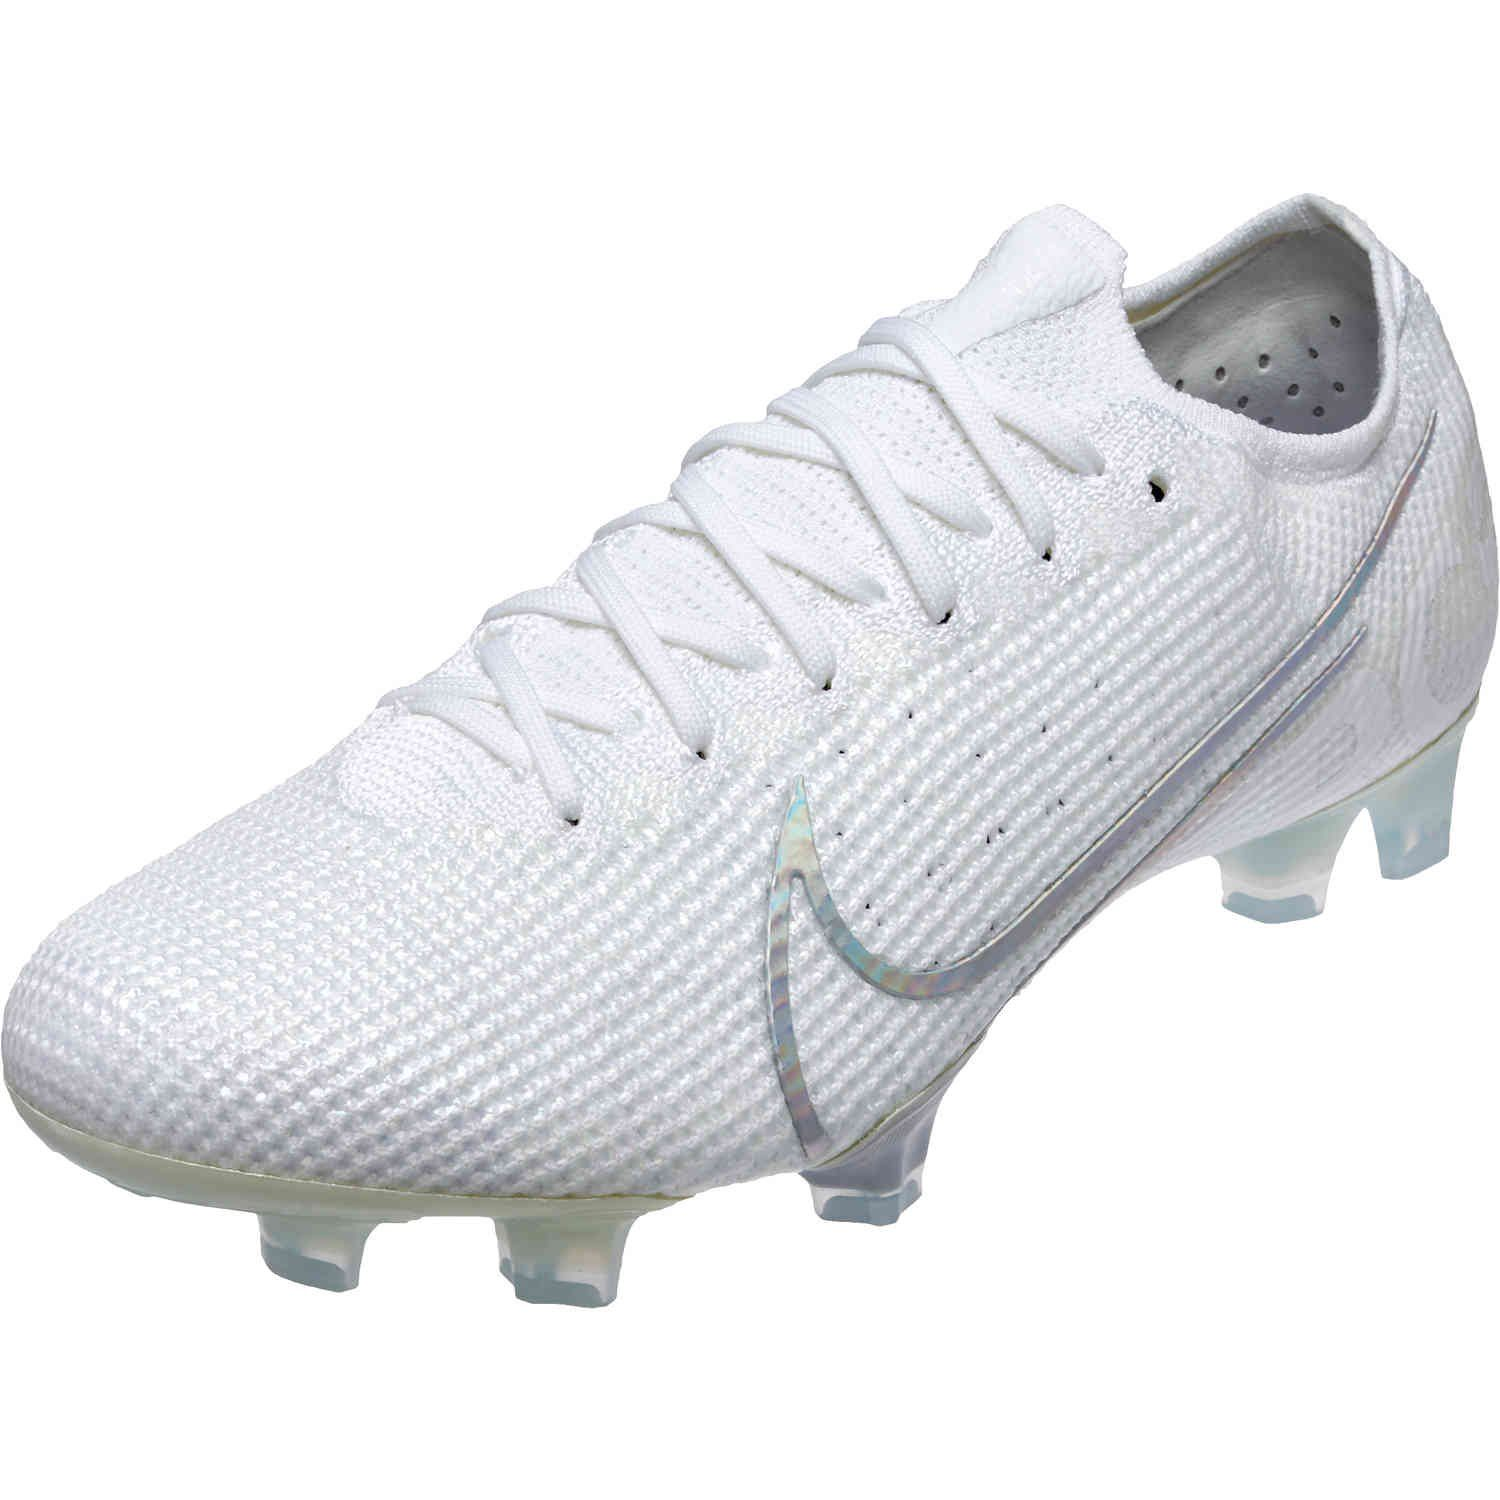 prendere Melodrammatico carbonio  Pin on Nike Mercurial Vapor Soccer Shoes